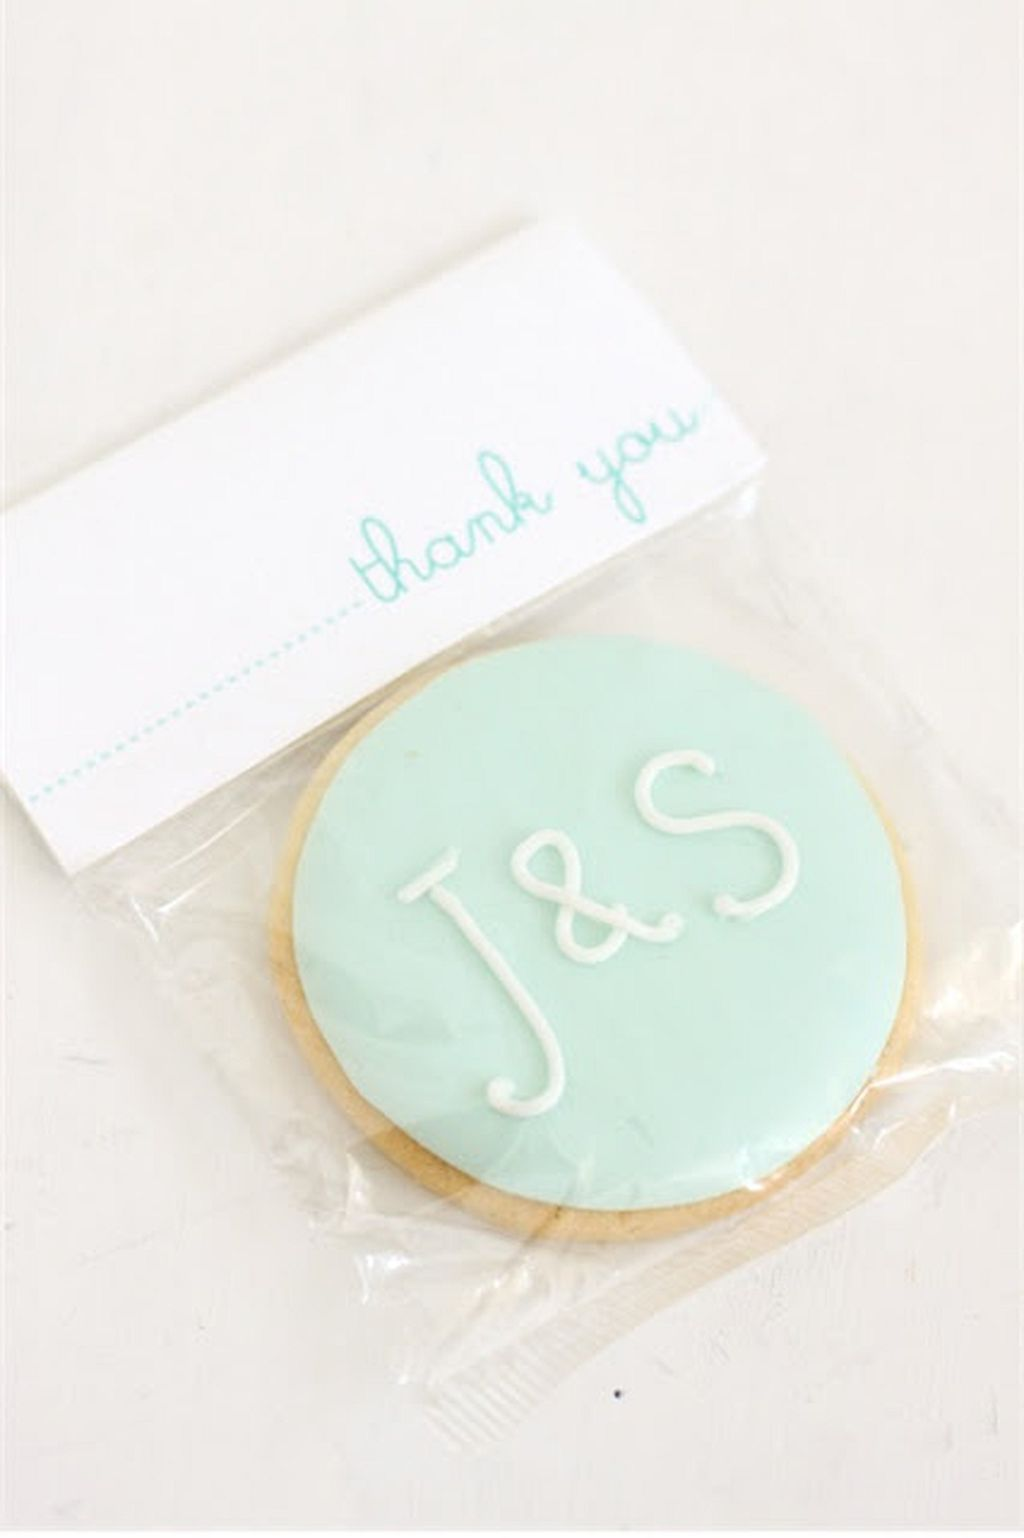 10+ The Cheapest Wedding Favors Ideas   Favors, Weddings and Wedding